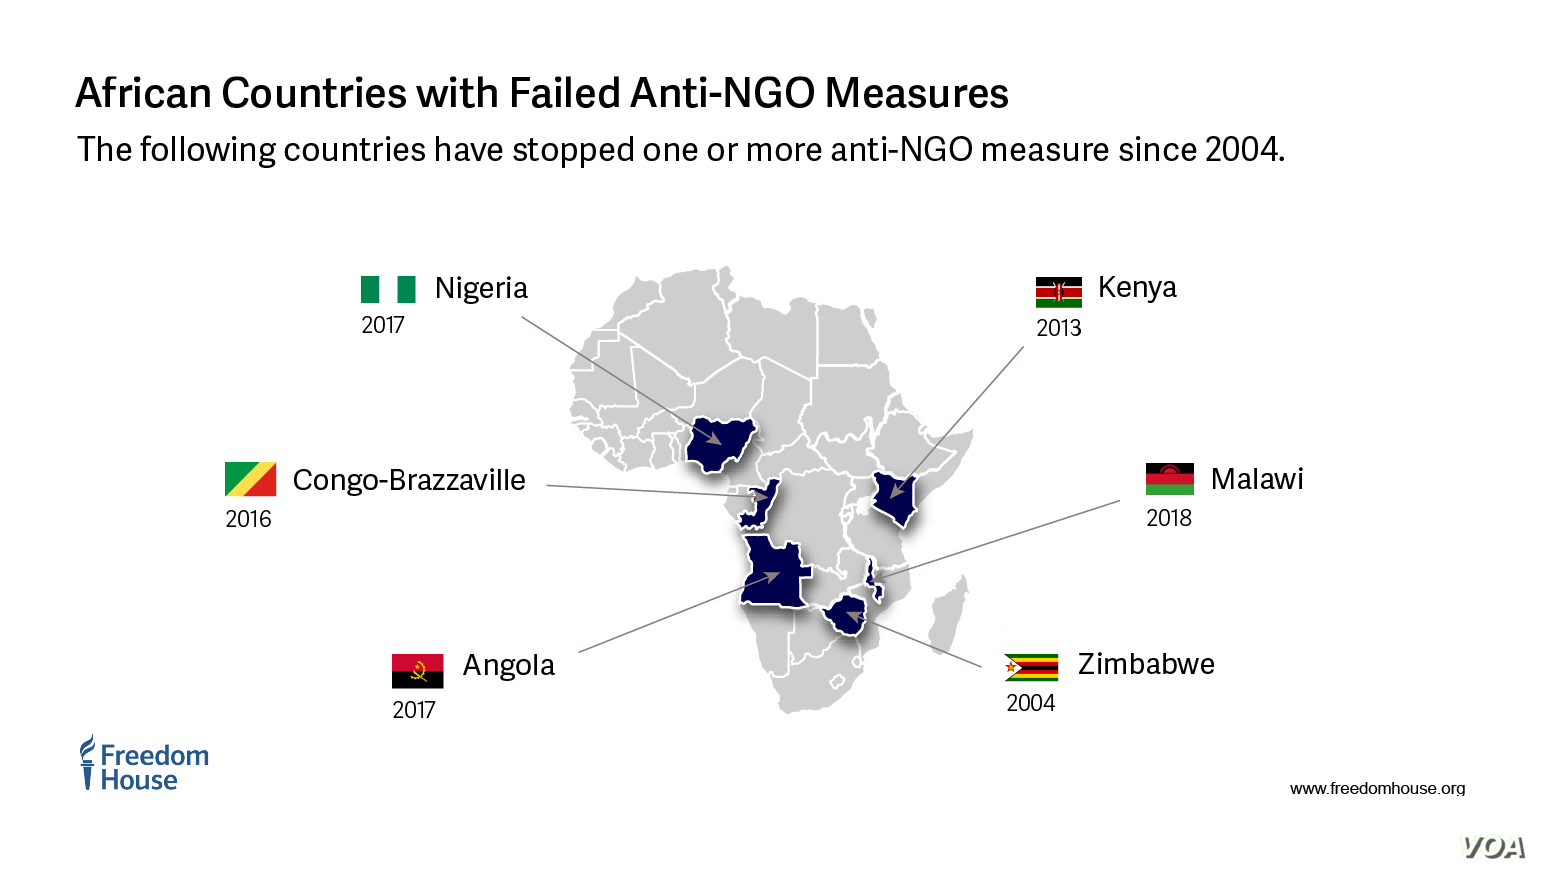 African Countries with Failed Anti-NGO Measures